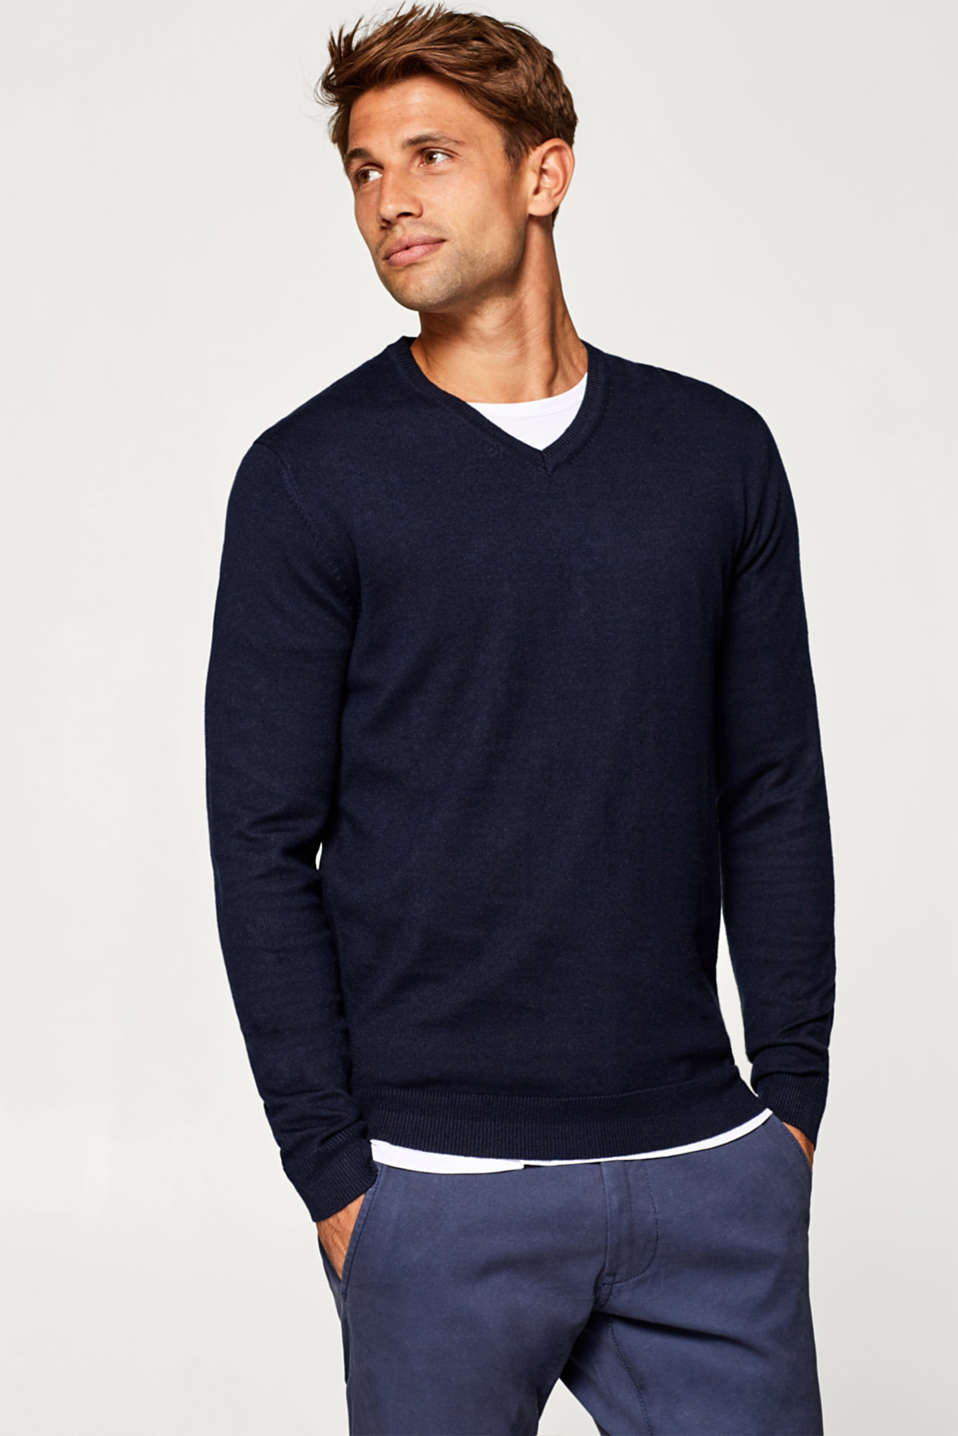 Esprit - Cotton jumper containing cashmere